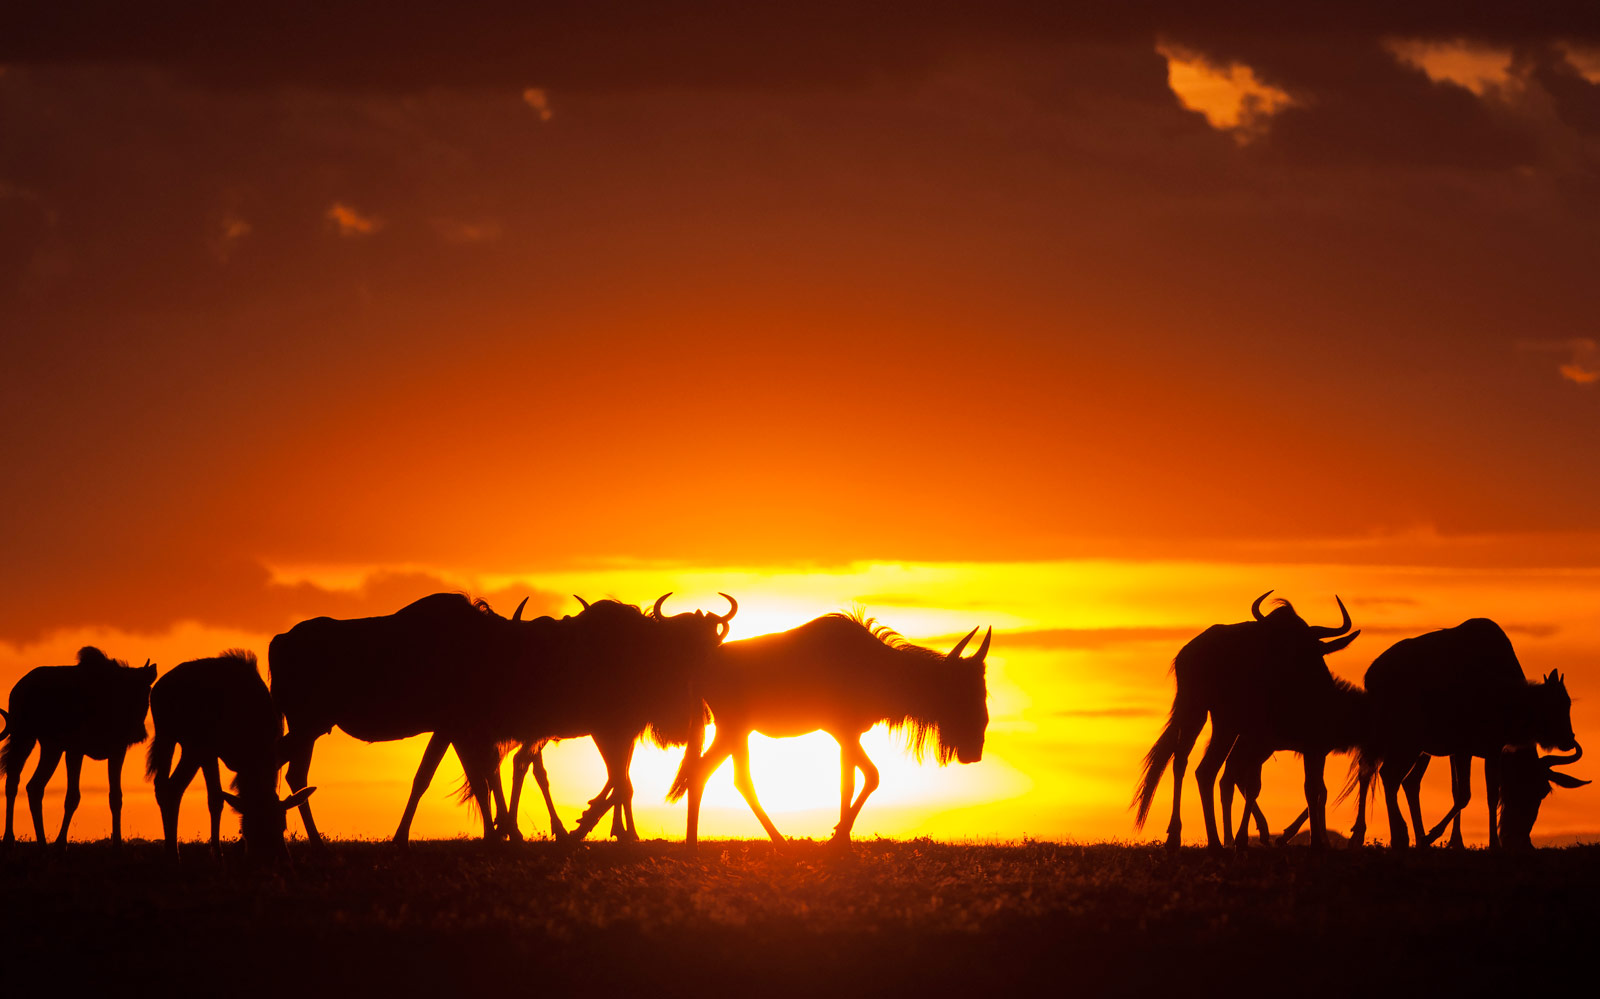 Wildebeest_migration_Sunset-daniel-rosengren